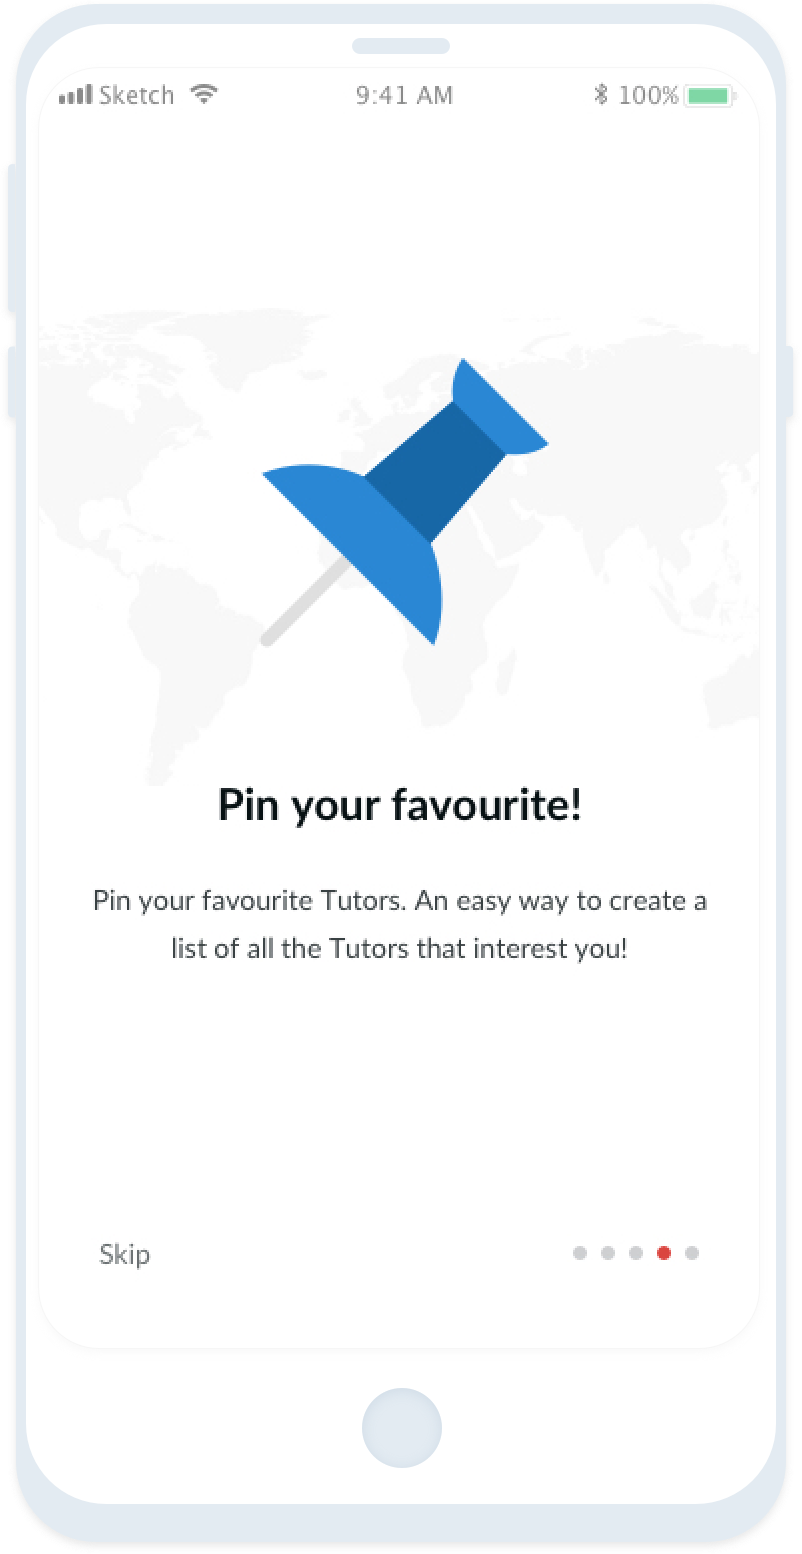 Find a tutor near me. Pin your favourite Tutors near you or online across the globe!